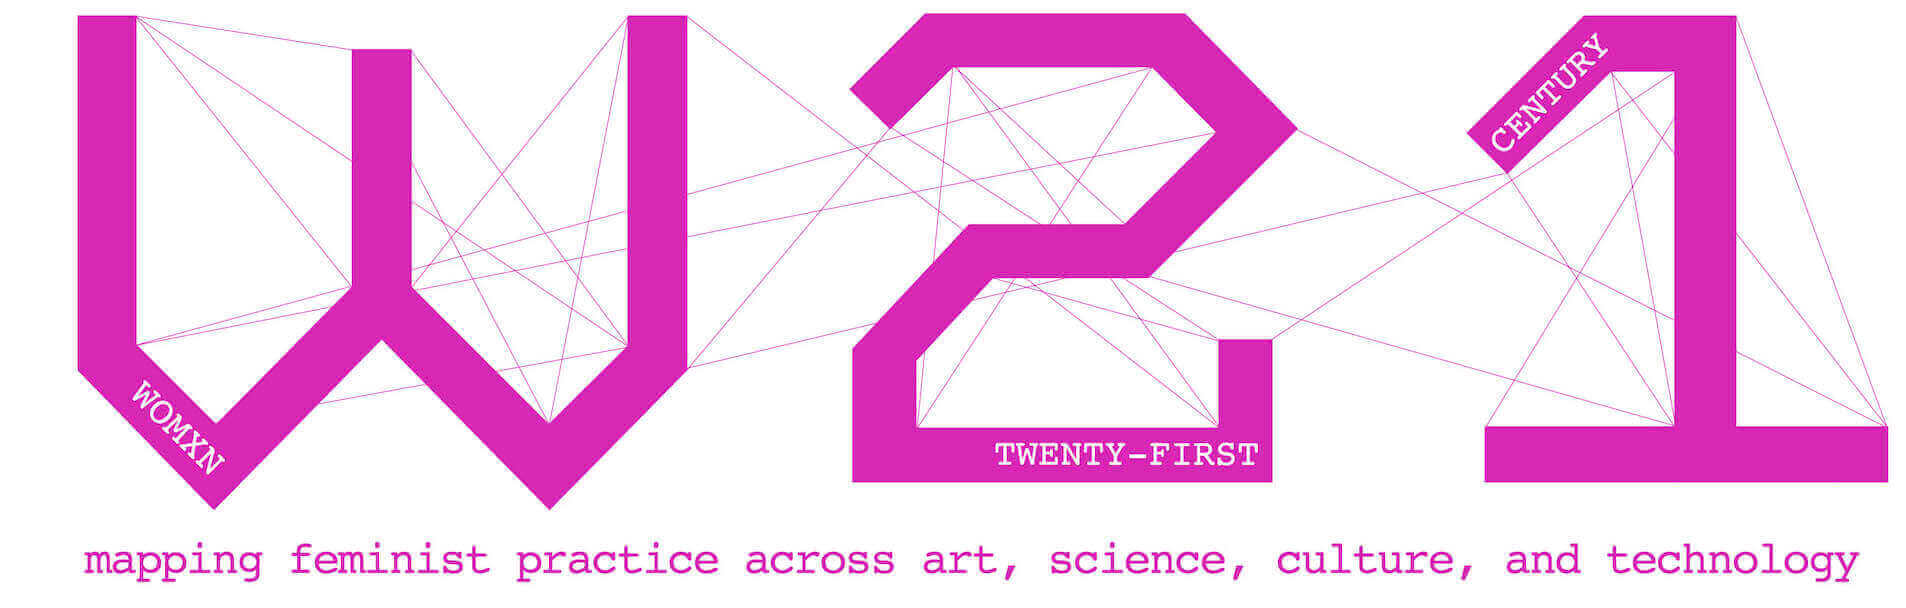 Logo W21 - Partner of Agora Digital Art